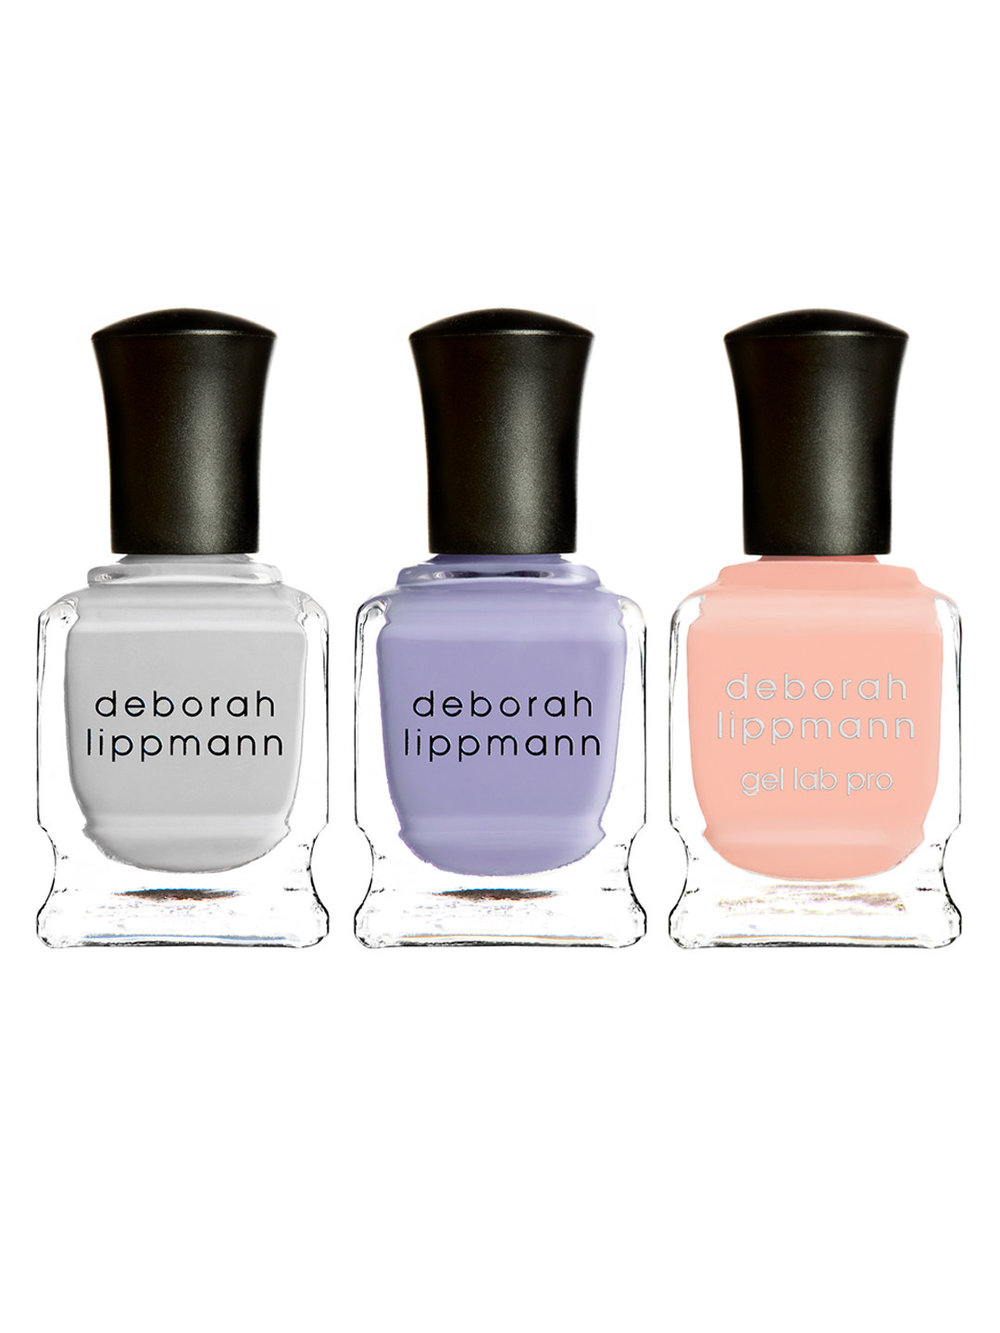 Deborah Lippman Nail Polish Set - $36 (was $54)